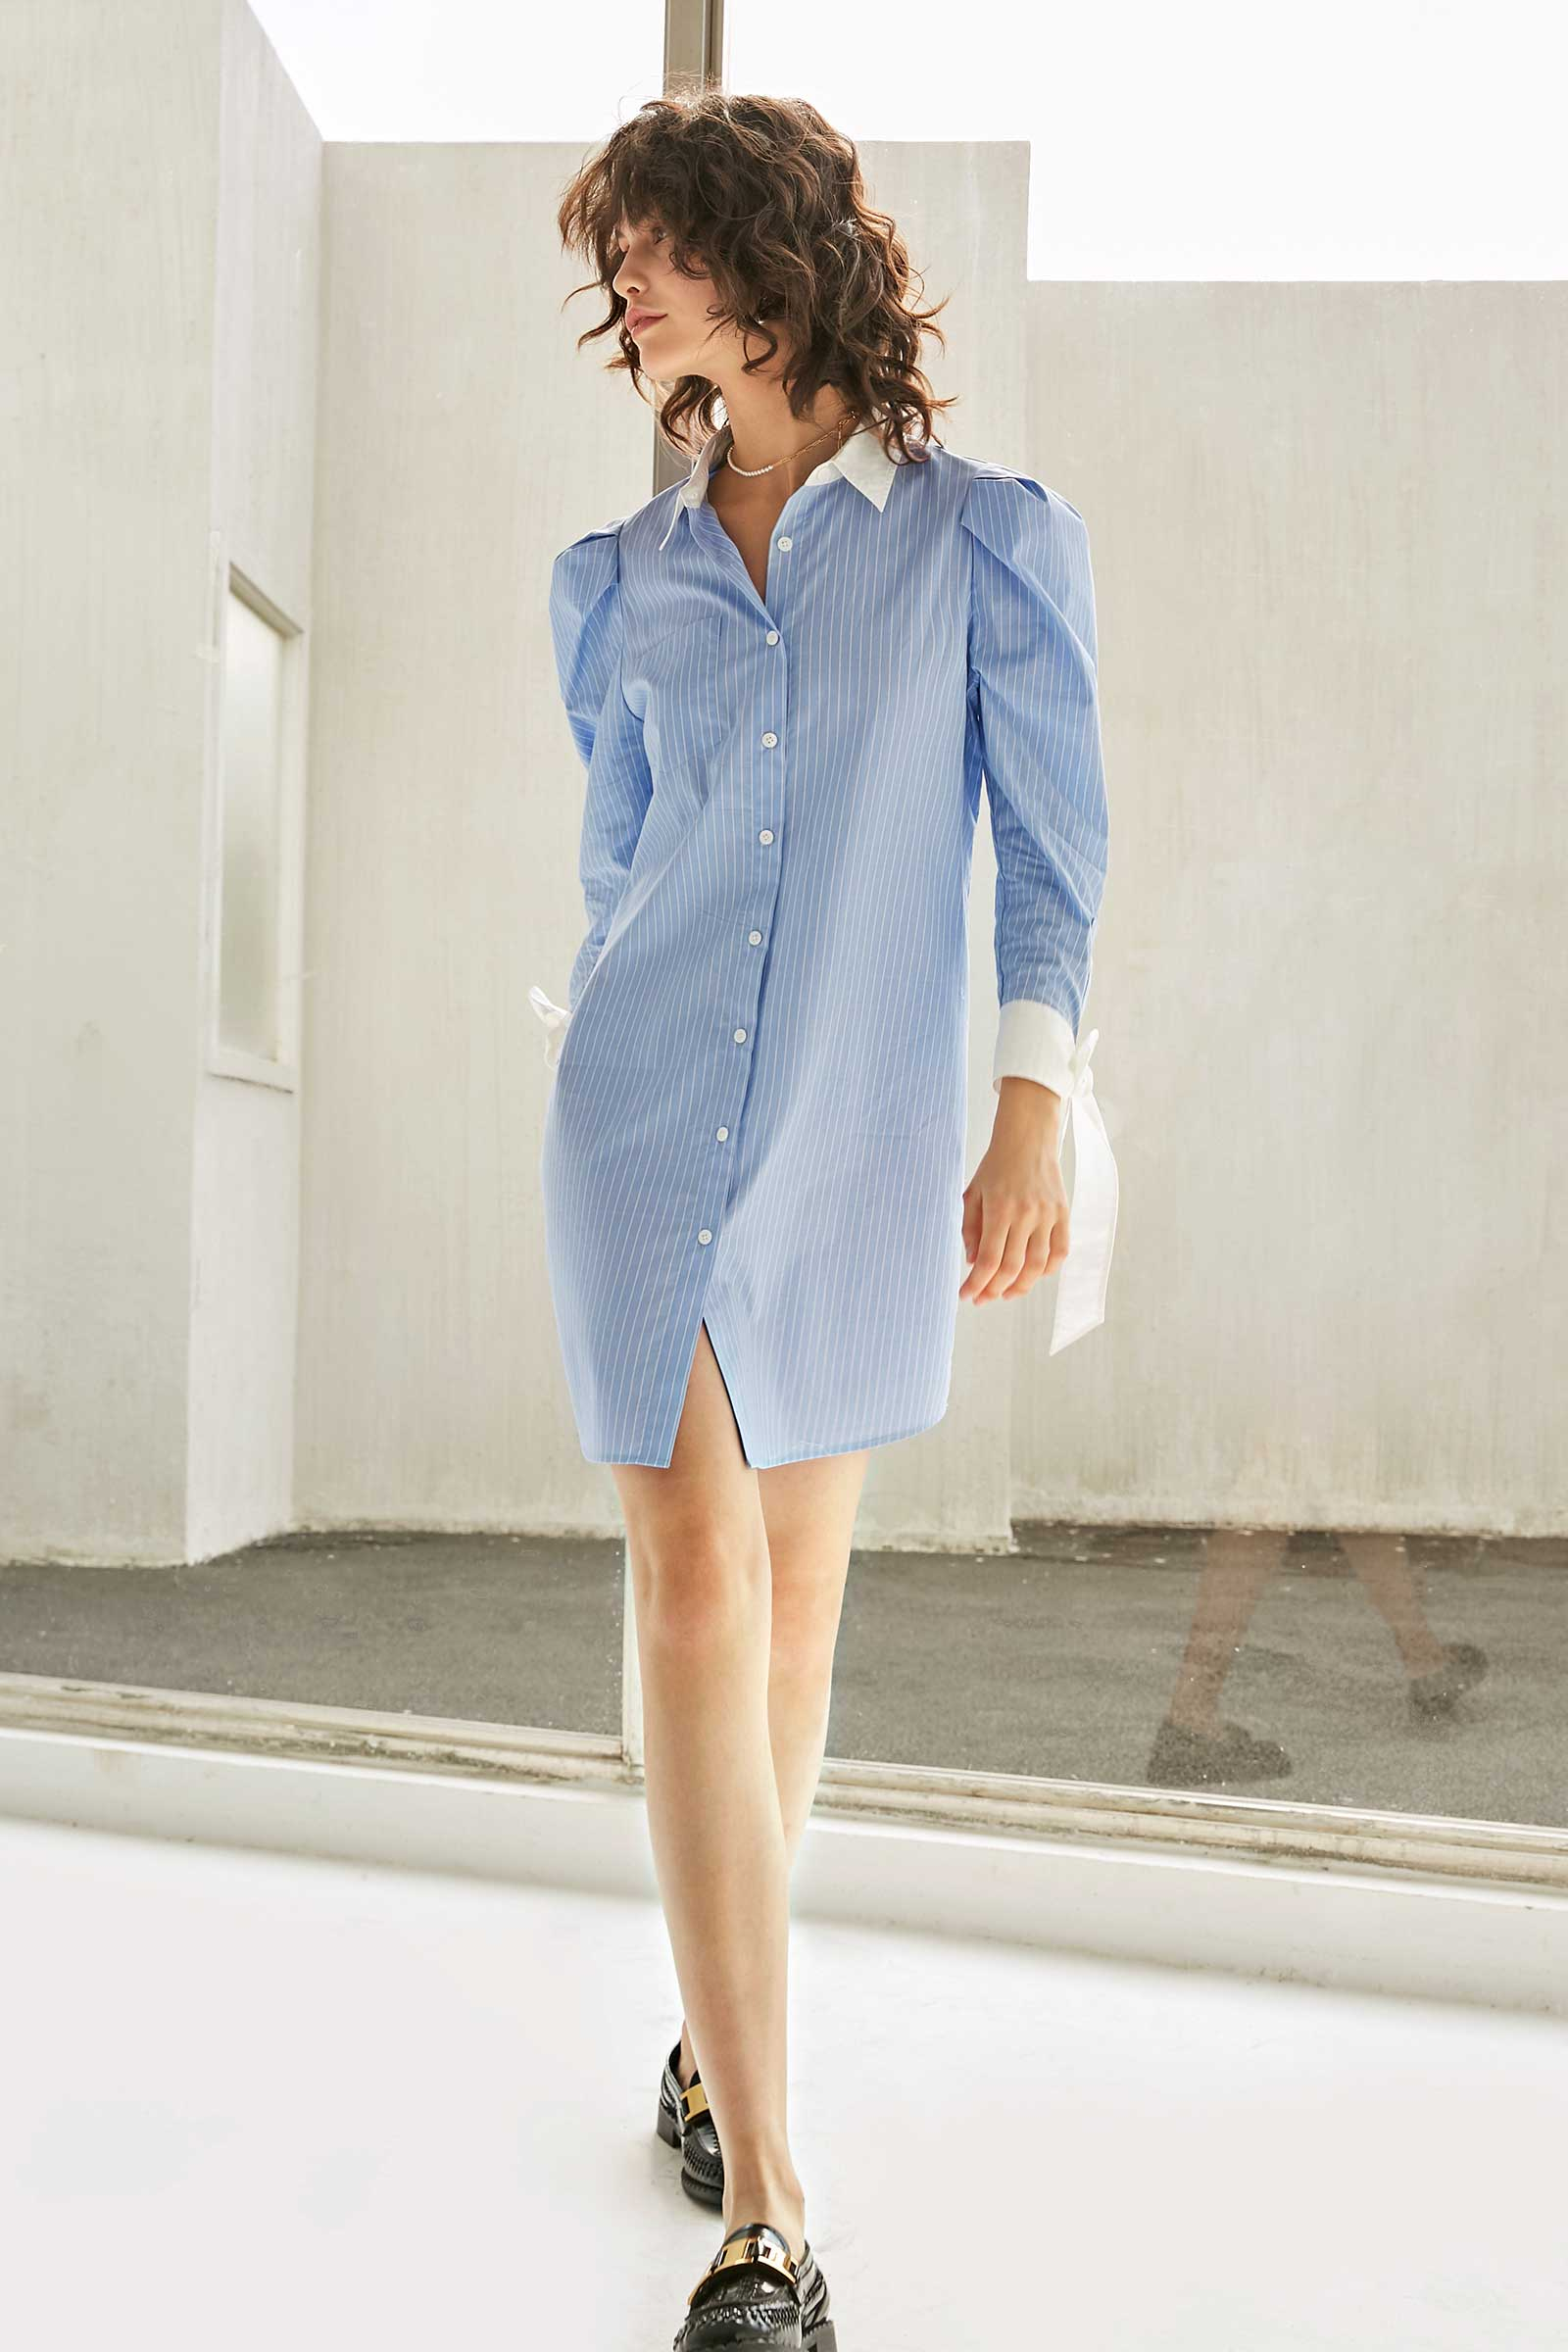 Amy Powder Blue White Collar Shirt Dress